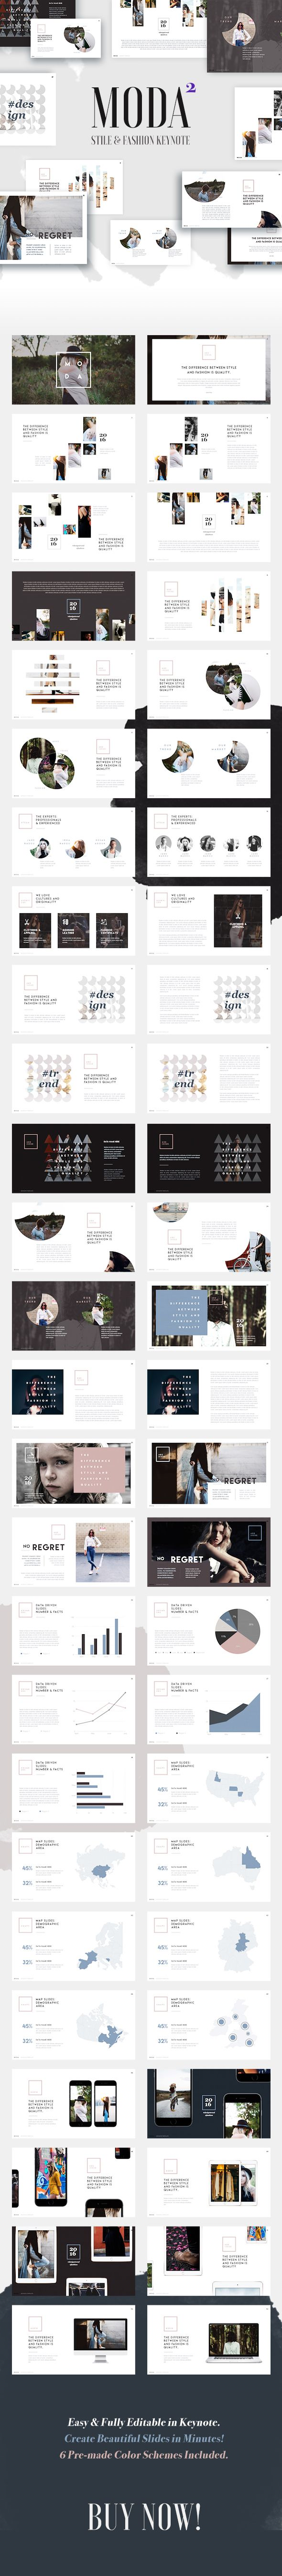 Moda 2  Fashion & Style Keynote Template  #1920x1080 #clean • Download ➝ https://graphicriver.net/item/moda-2-fashion-style-keynote-template/18346922?ref=pxcr